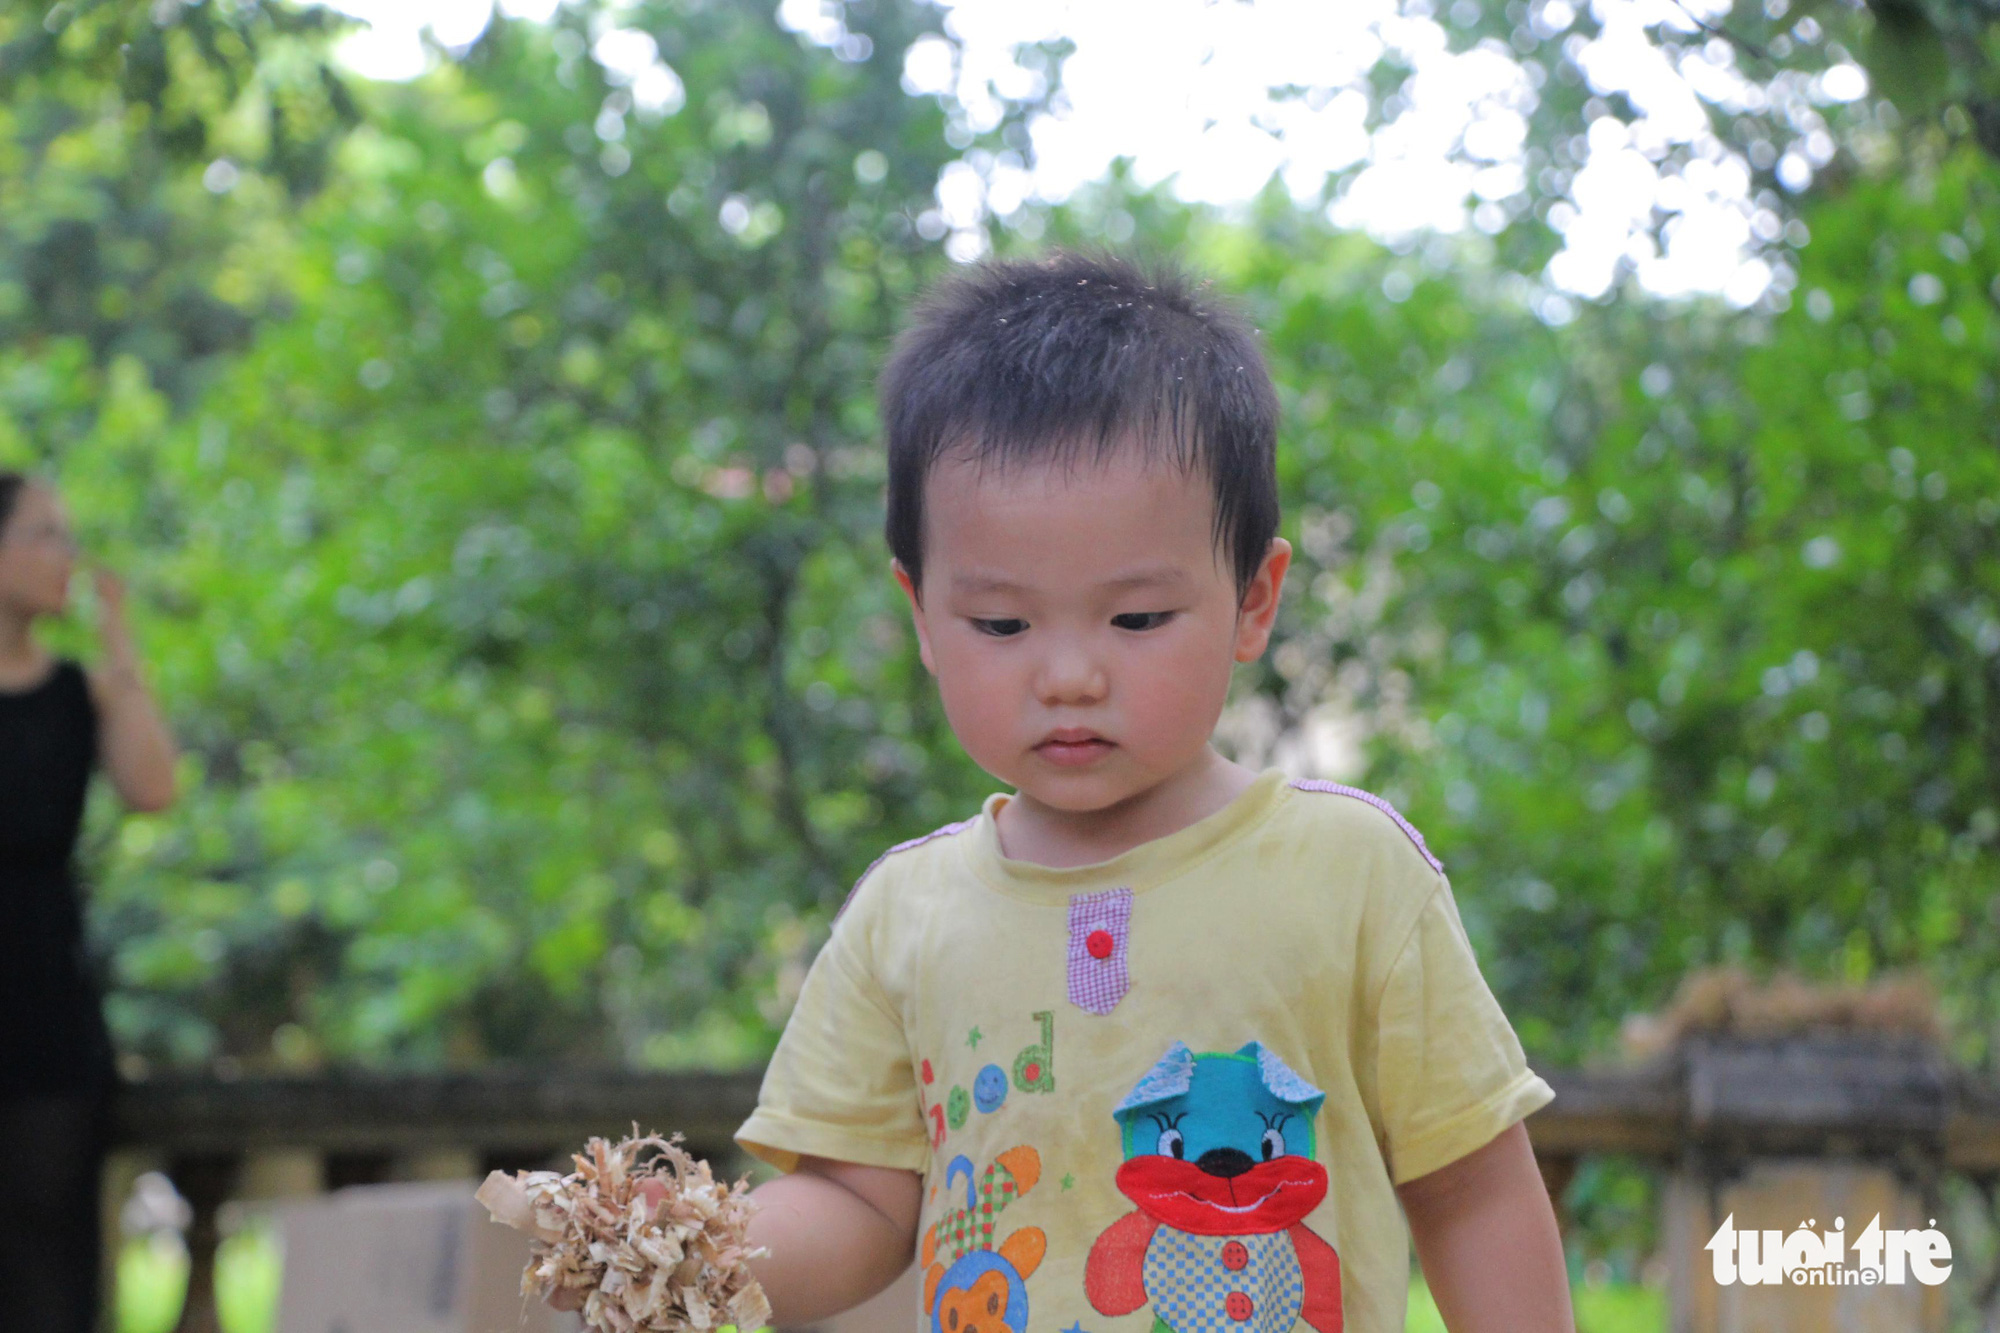 Moc, a two-year-old boy, holds sawdust in his hand at the 'Kingdom of Recycled Materials' event in Hanoi, Vietnam, May 31, 2020. Photo: Ha Thanh / Tuoi Tre